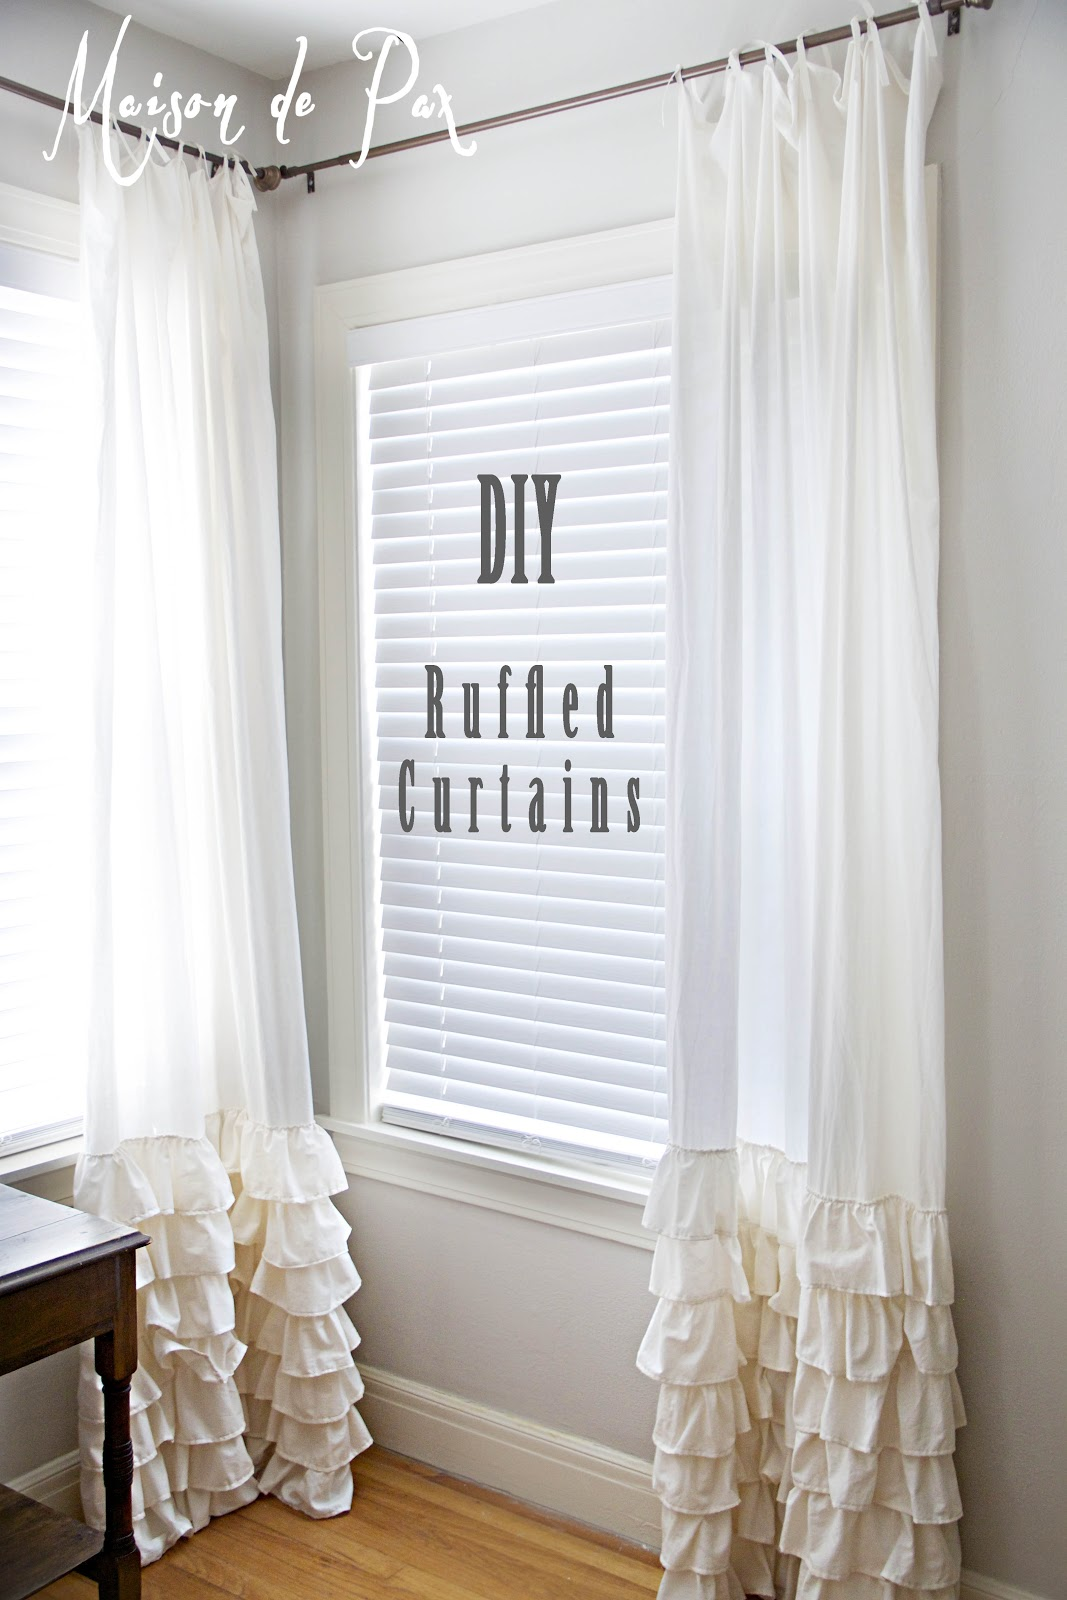 Ruffled Curtains - Maison de Pax Ruffled Curtains